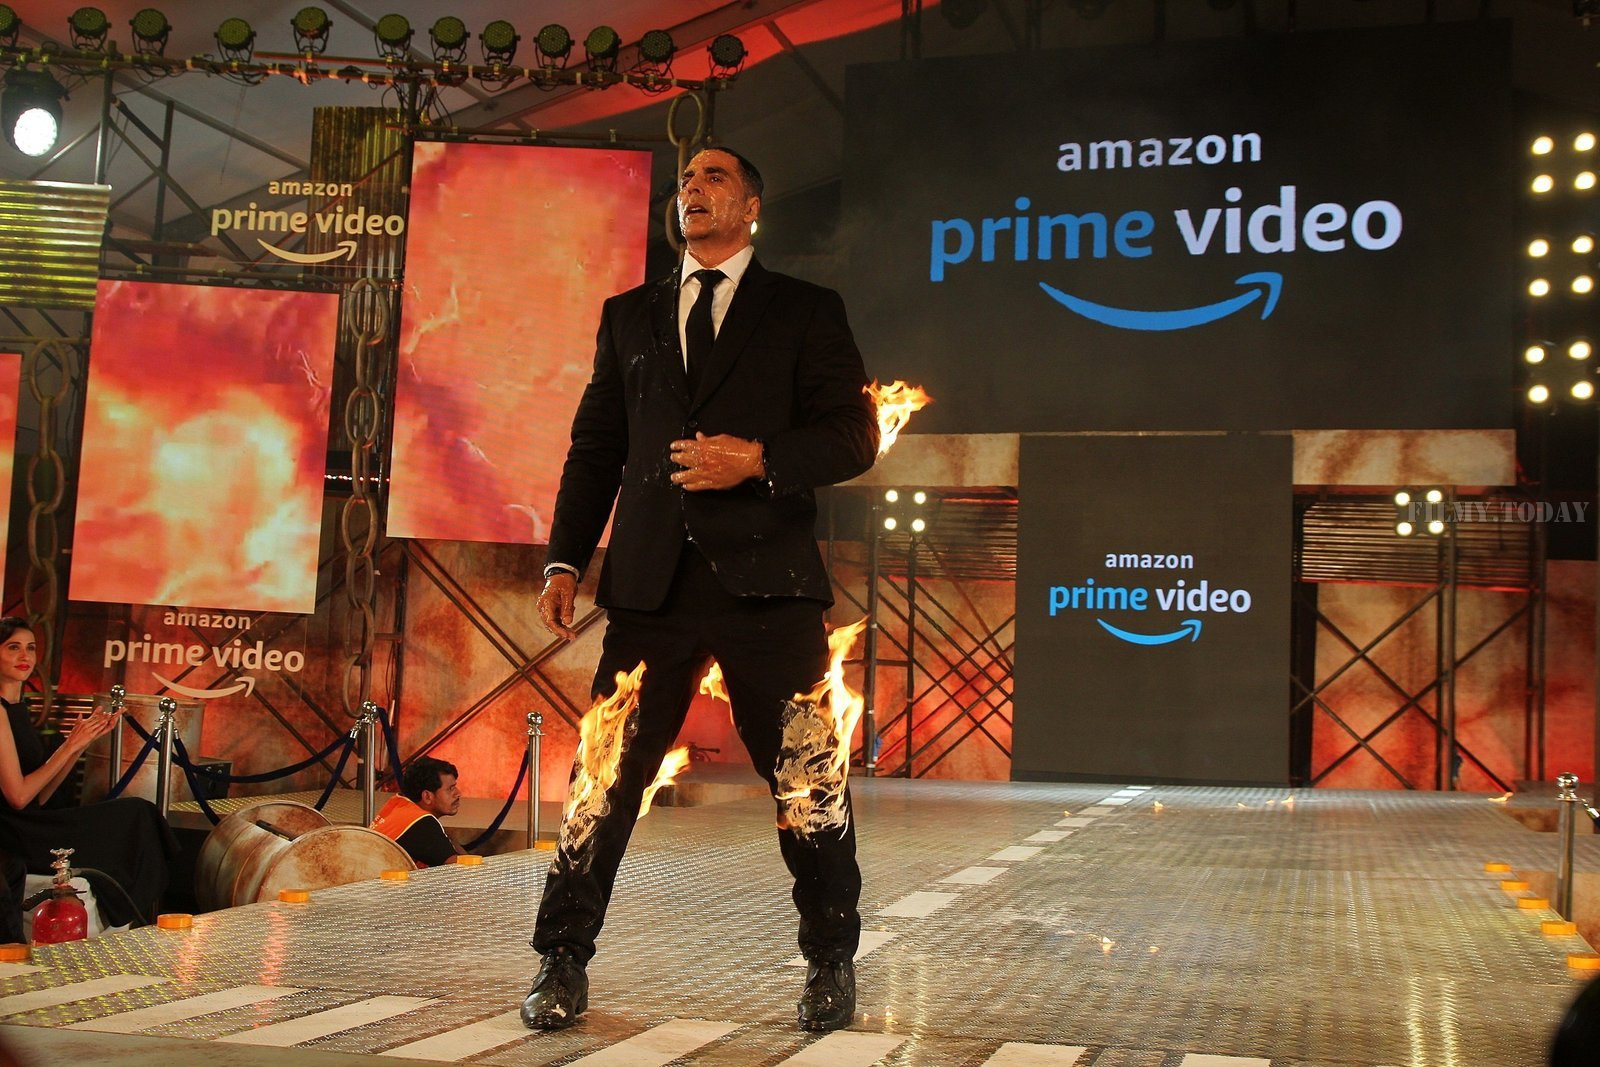 Akshay Kumar - Photos: Akshay Kumar makes his digital debut with Amazon Prime Video | Picture 1631999